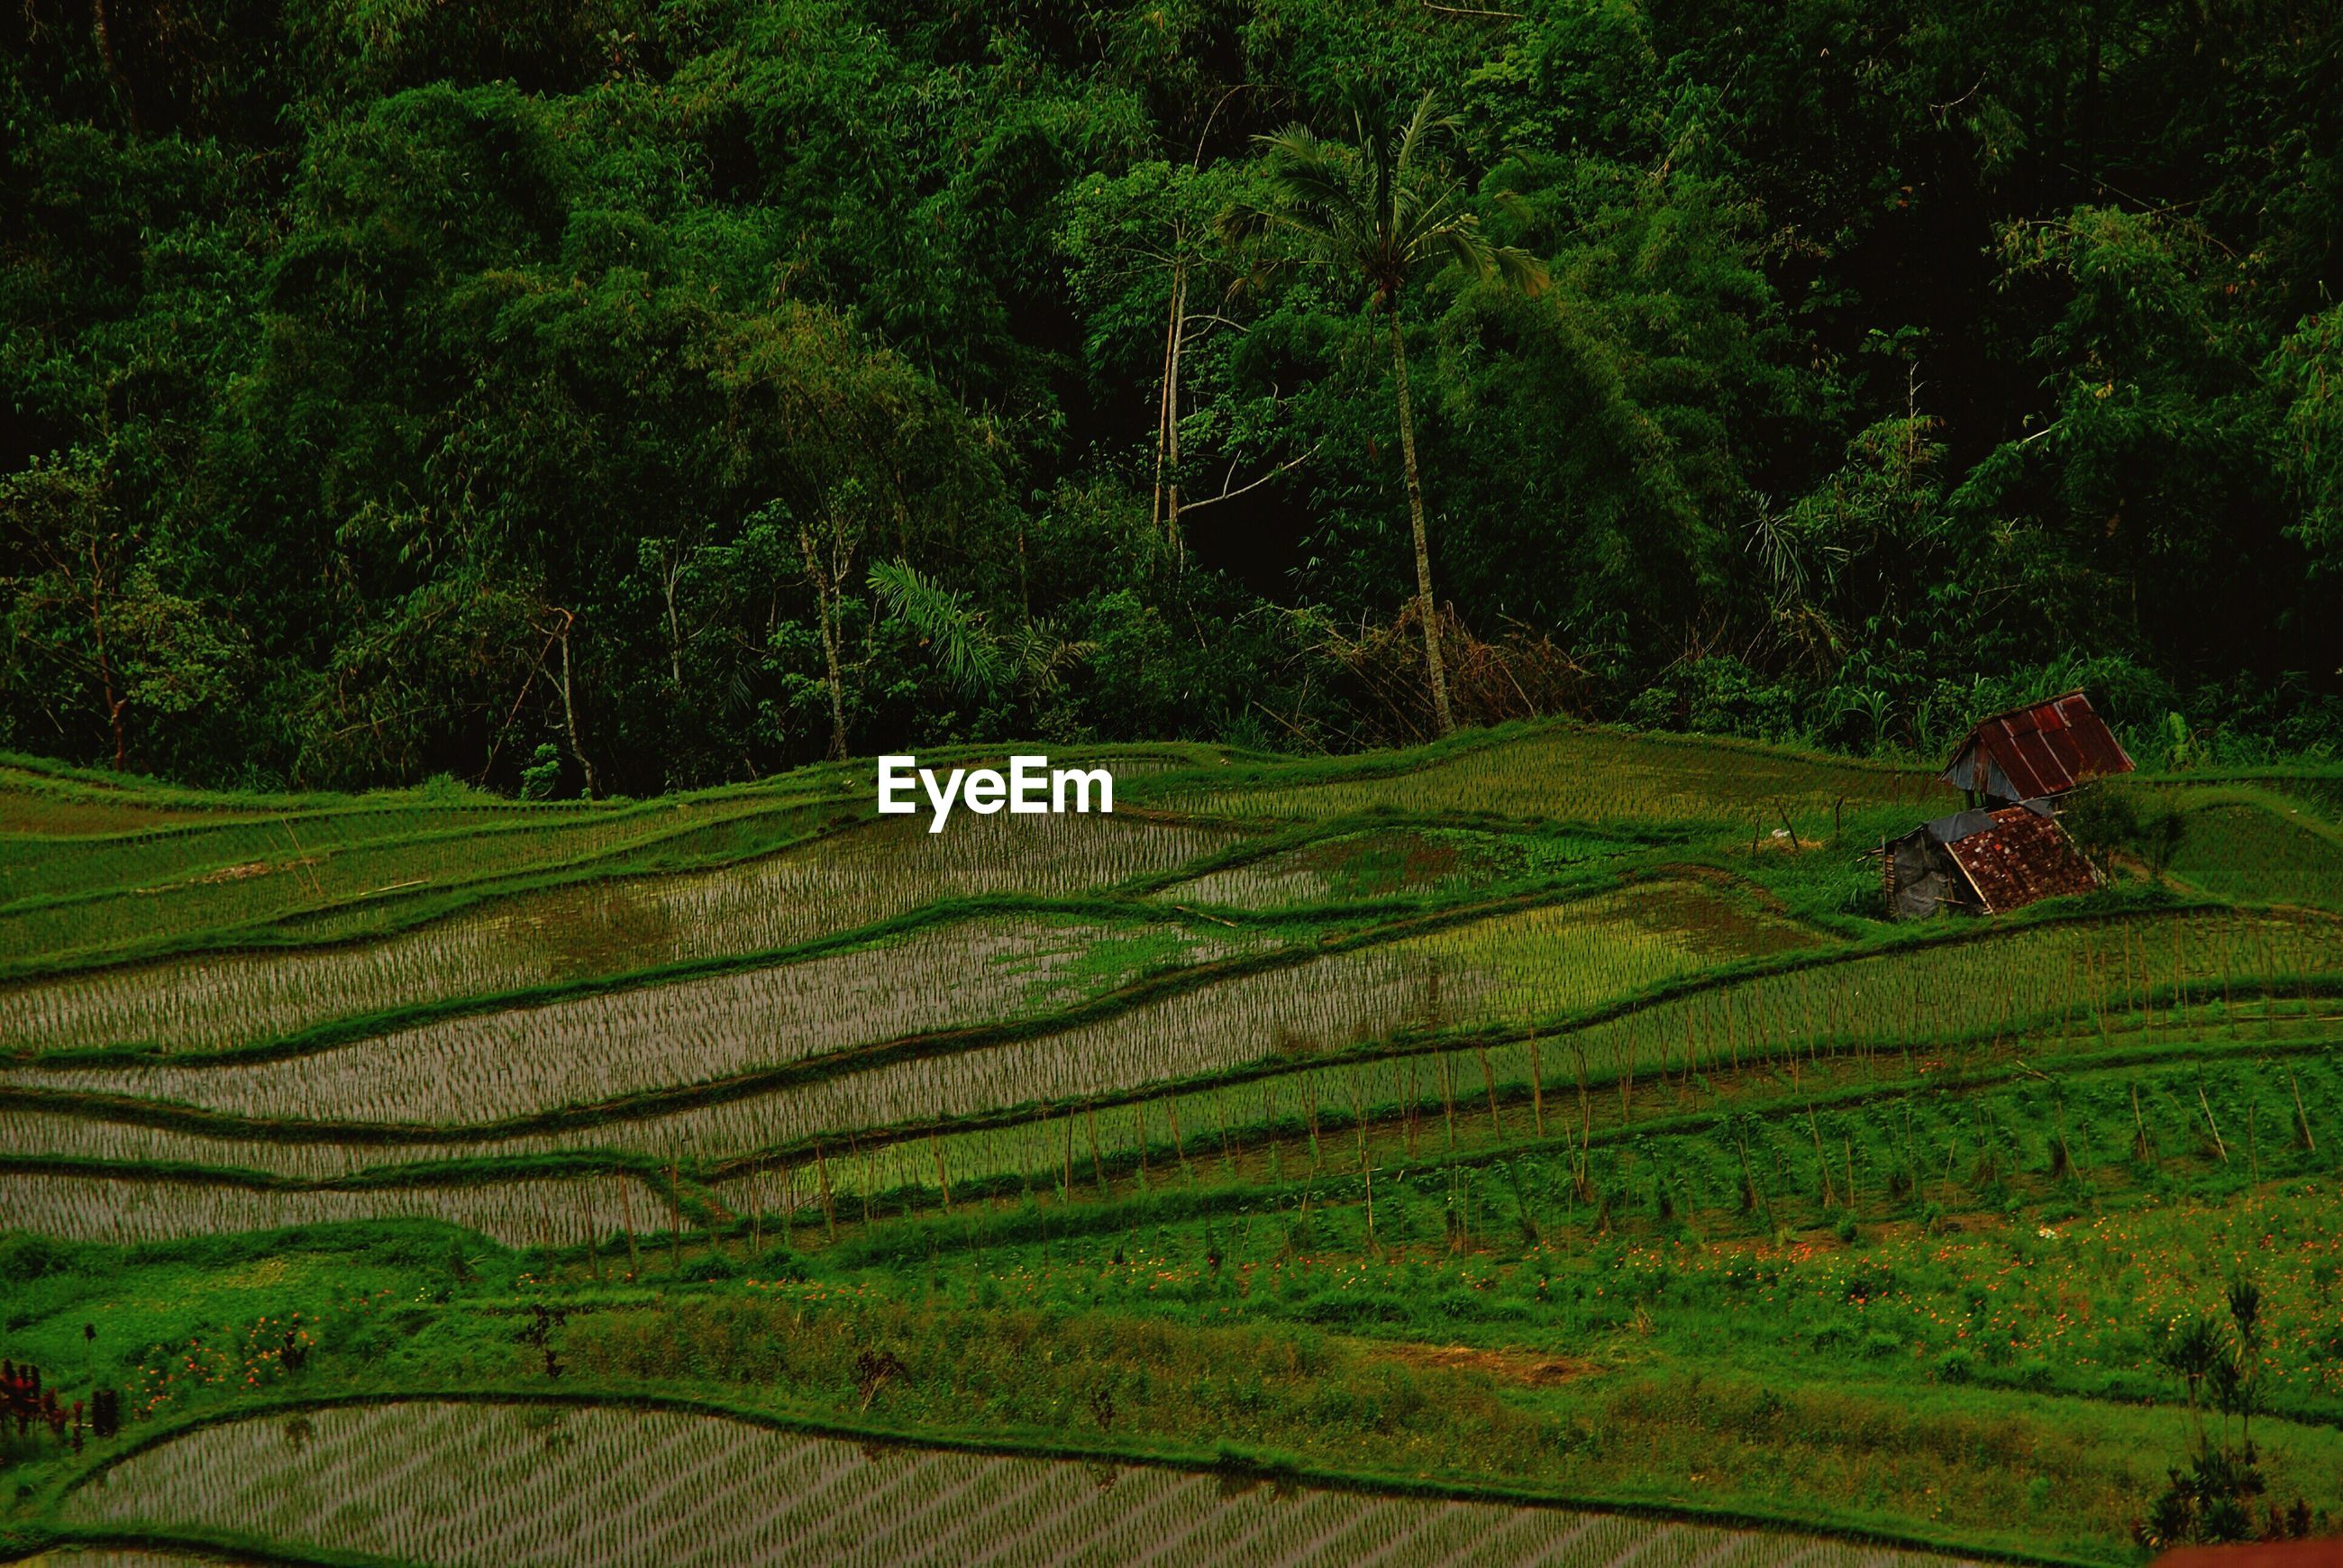 High angle view of green rural field